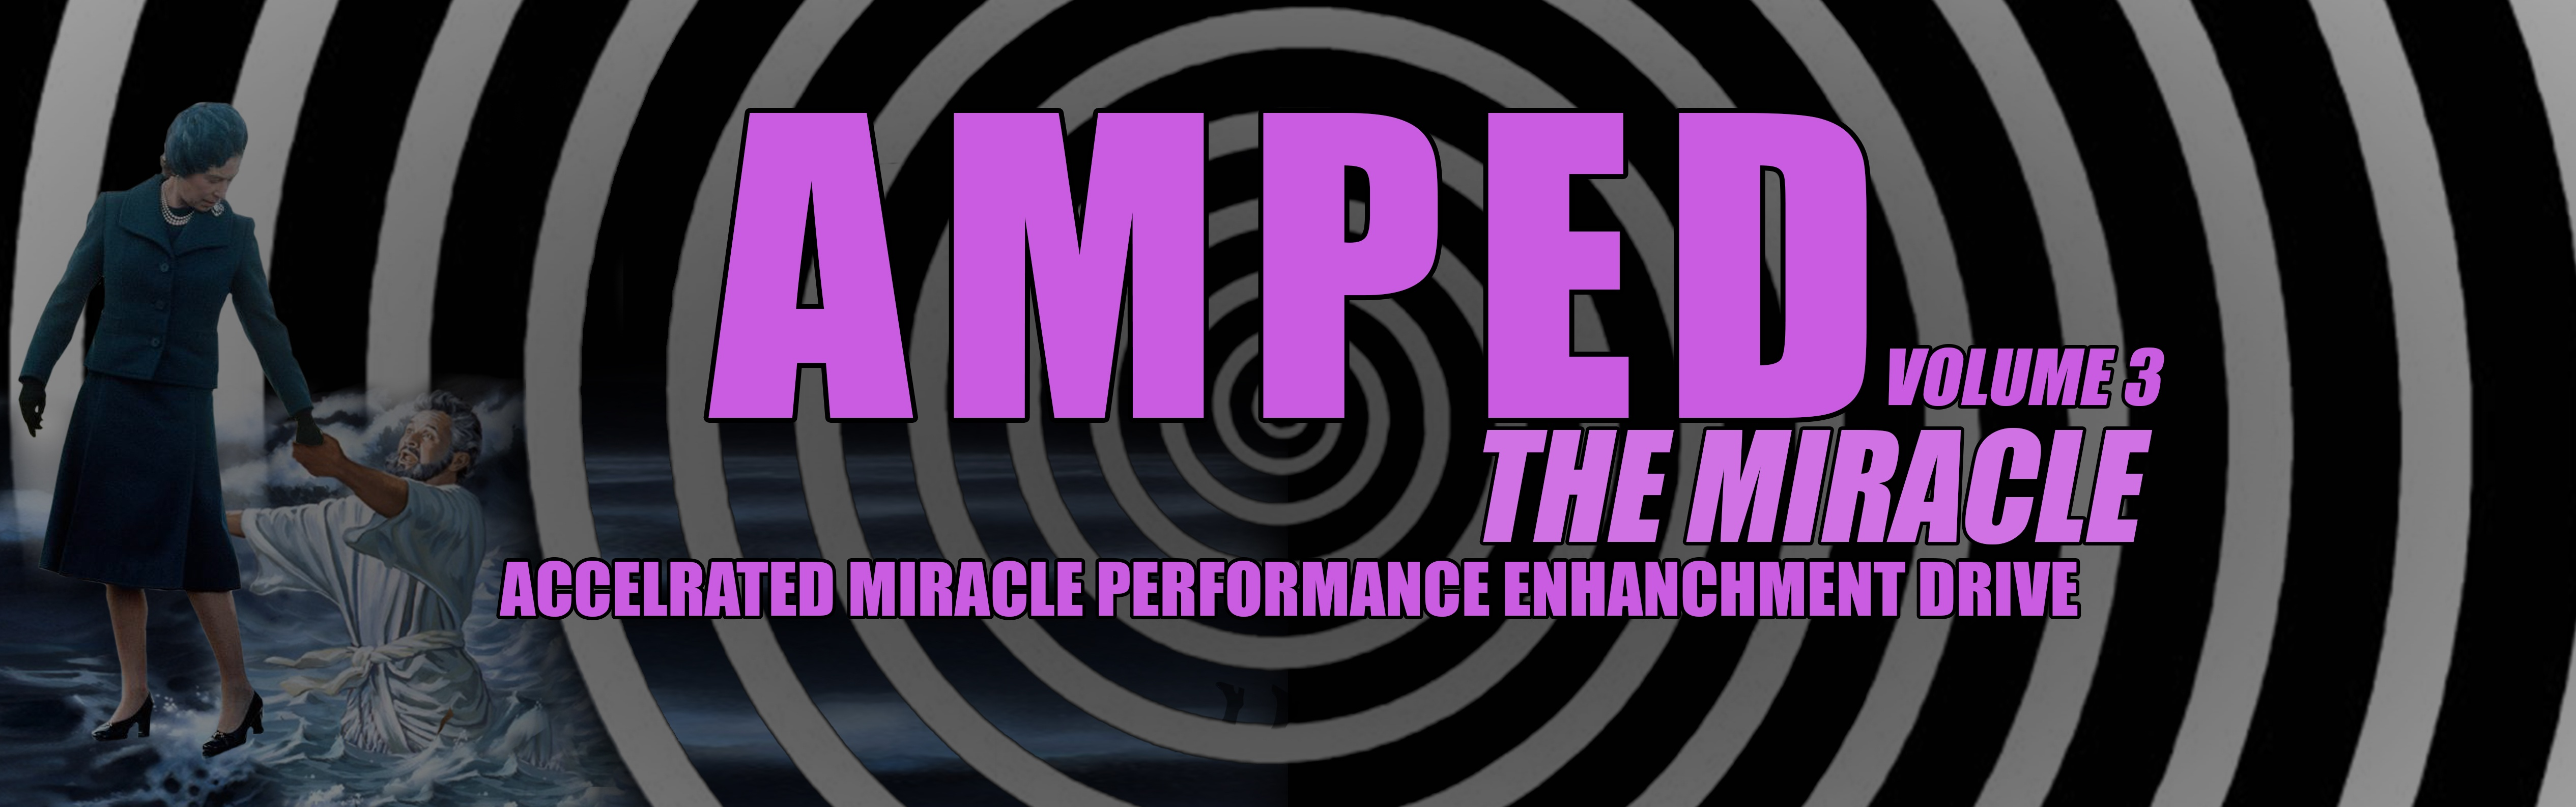 AMPED BRAIN ENTRAINMENT PROGRAMS